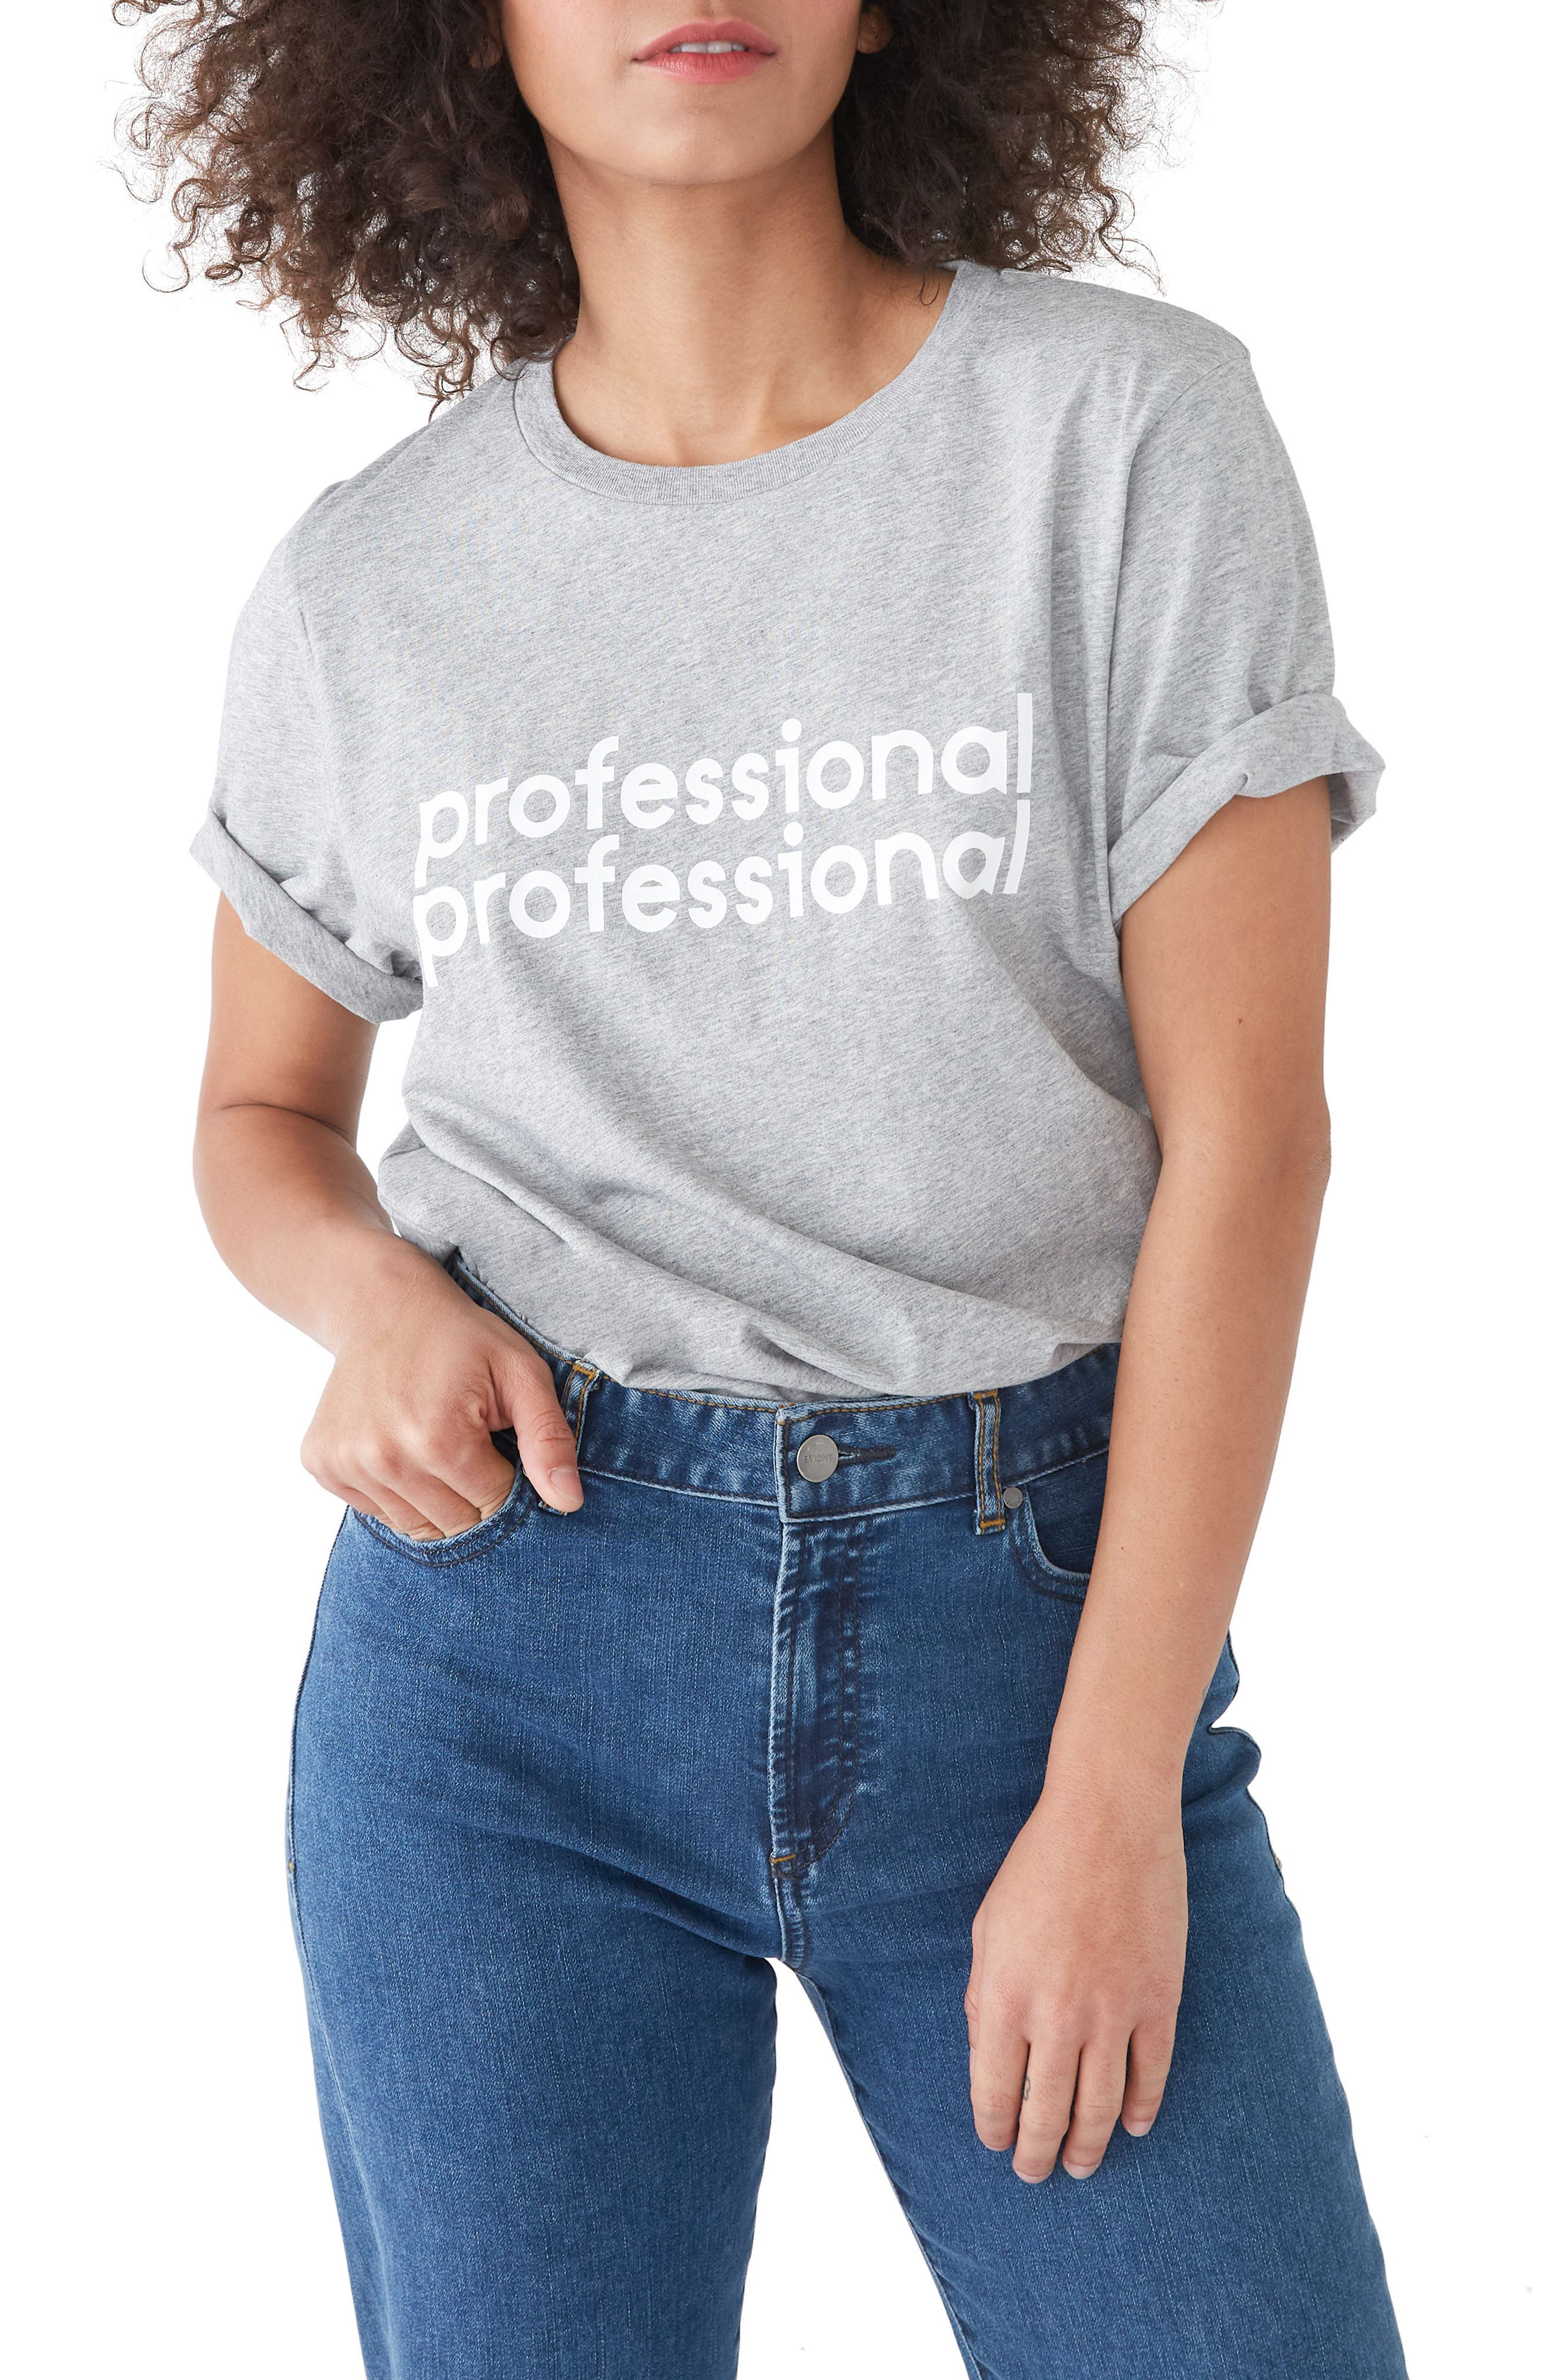 Professional Professional Classic Tee,                             Main thumbnail 1, color,                             051